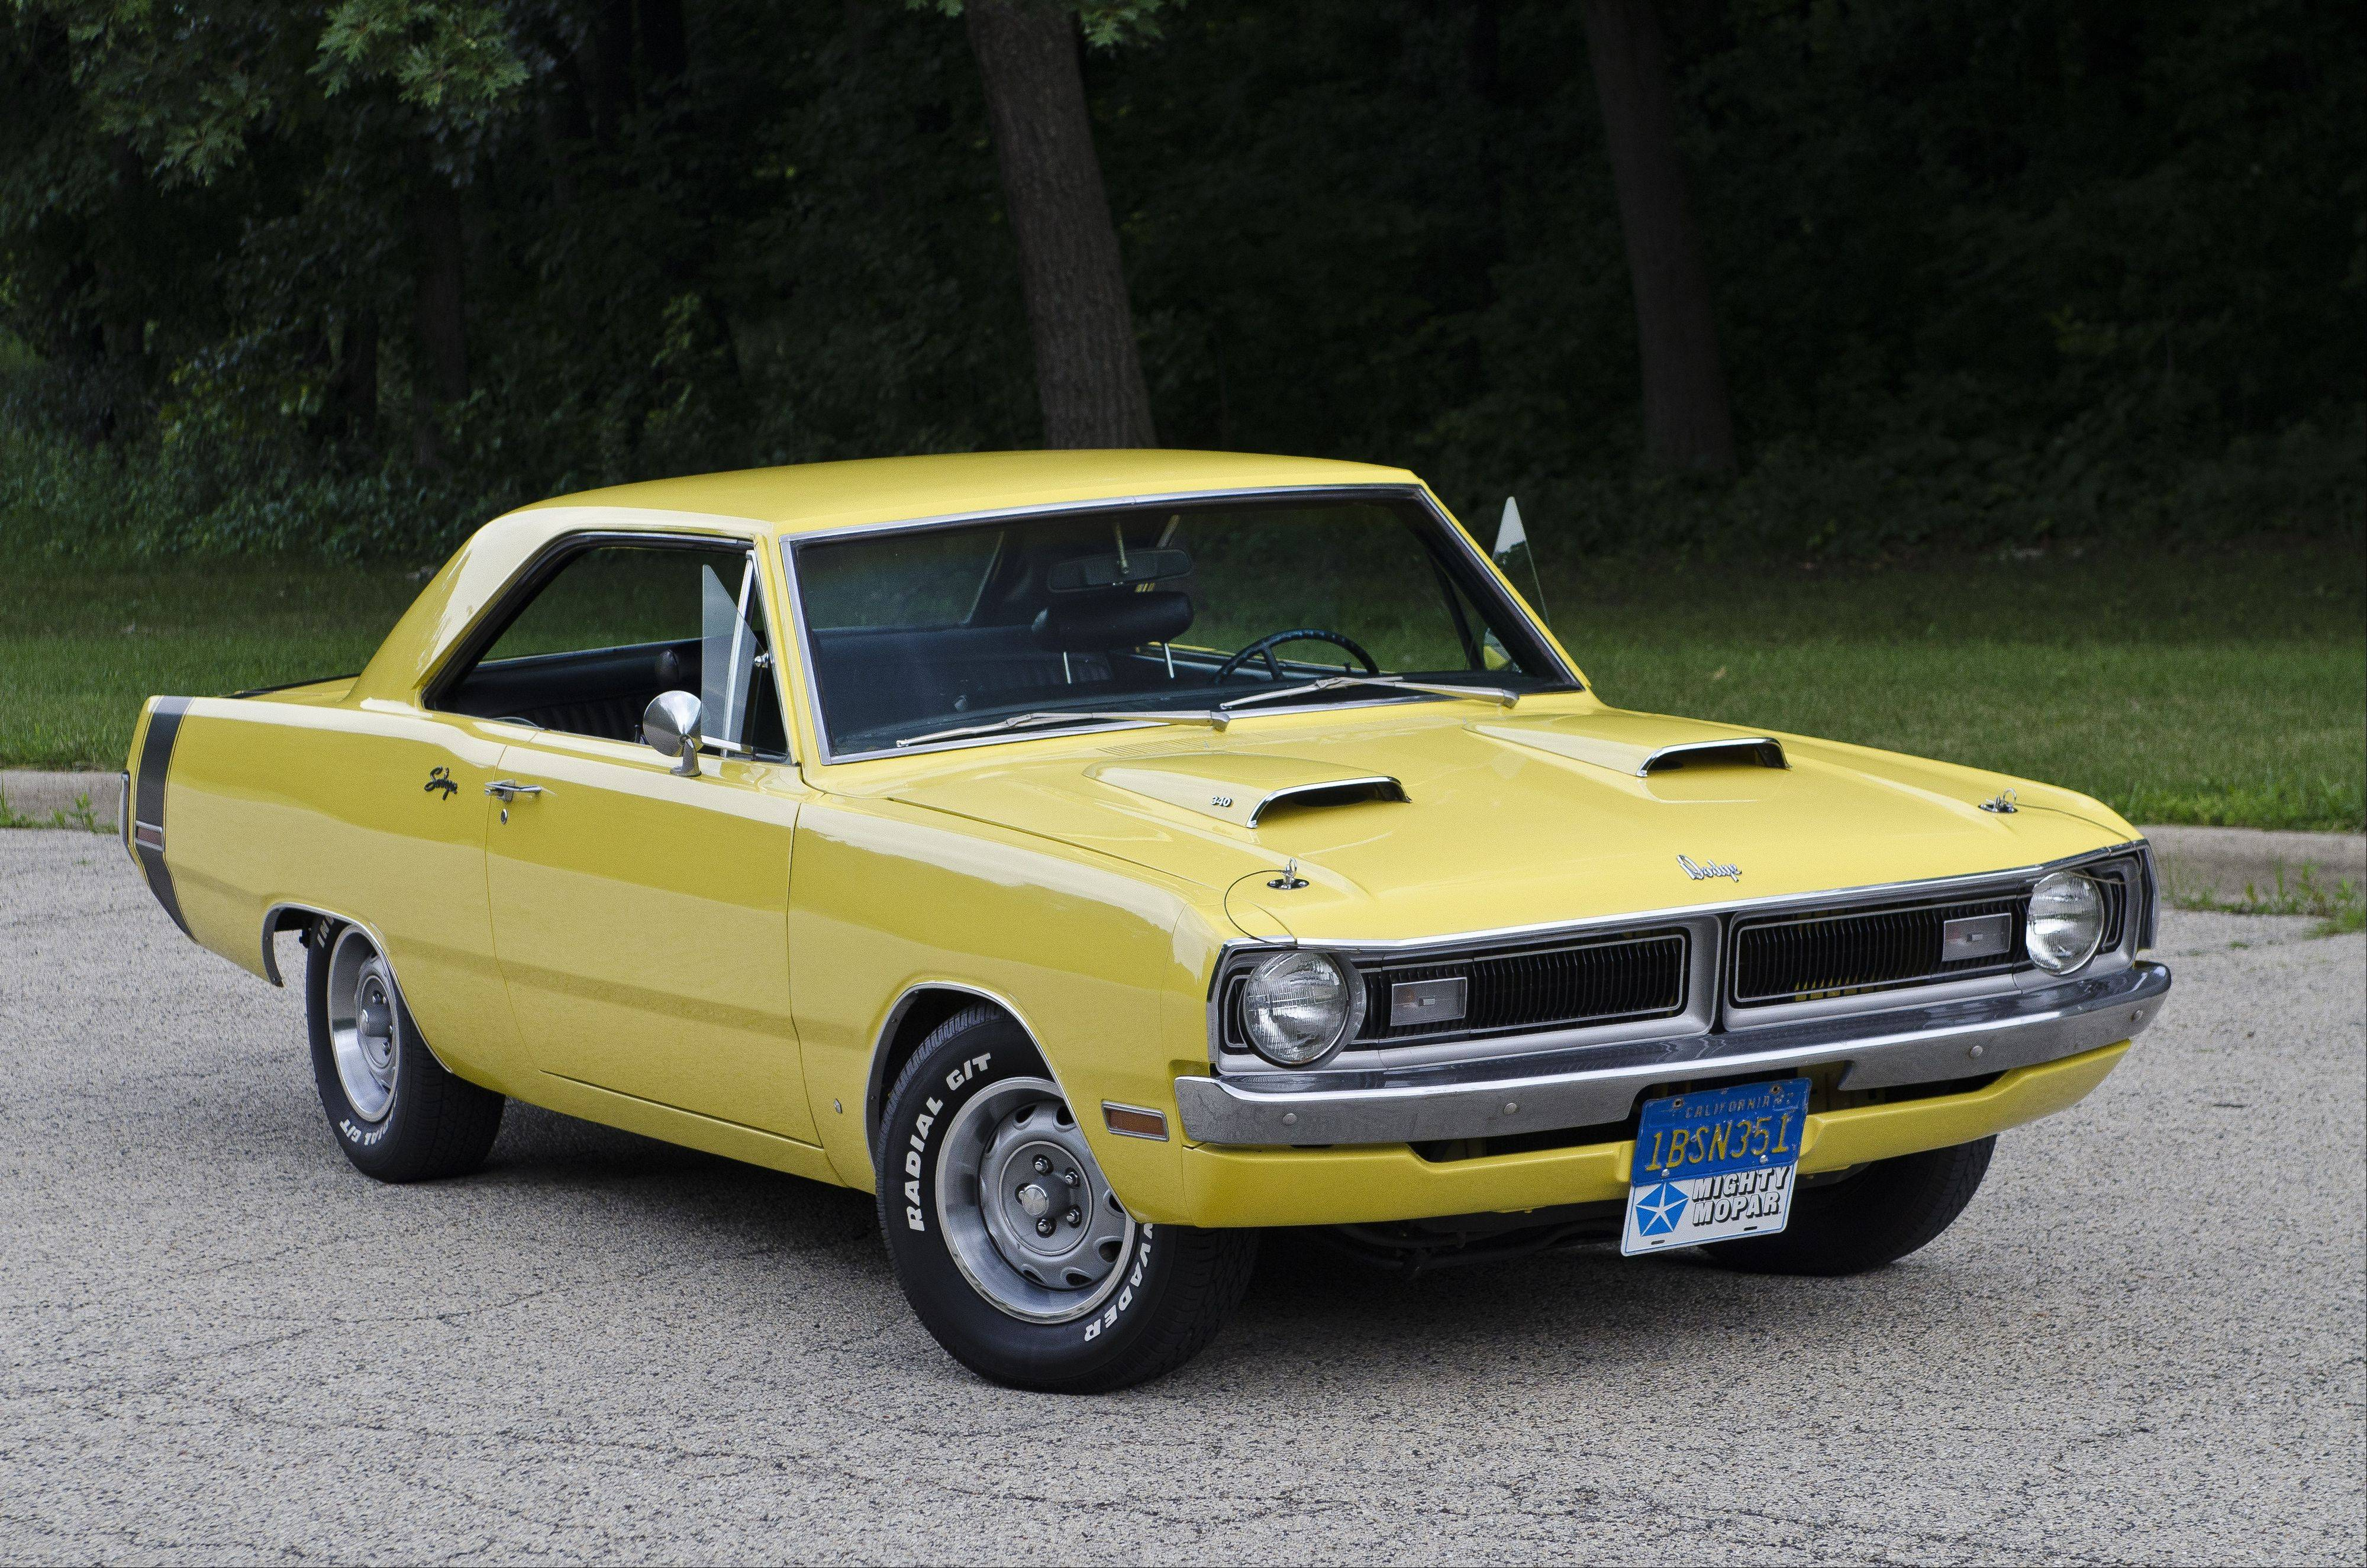 A bumblebee stripe around the trunk lid and twin hood scoops are telling signs that this is no ordinary Dodge Dart.